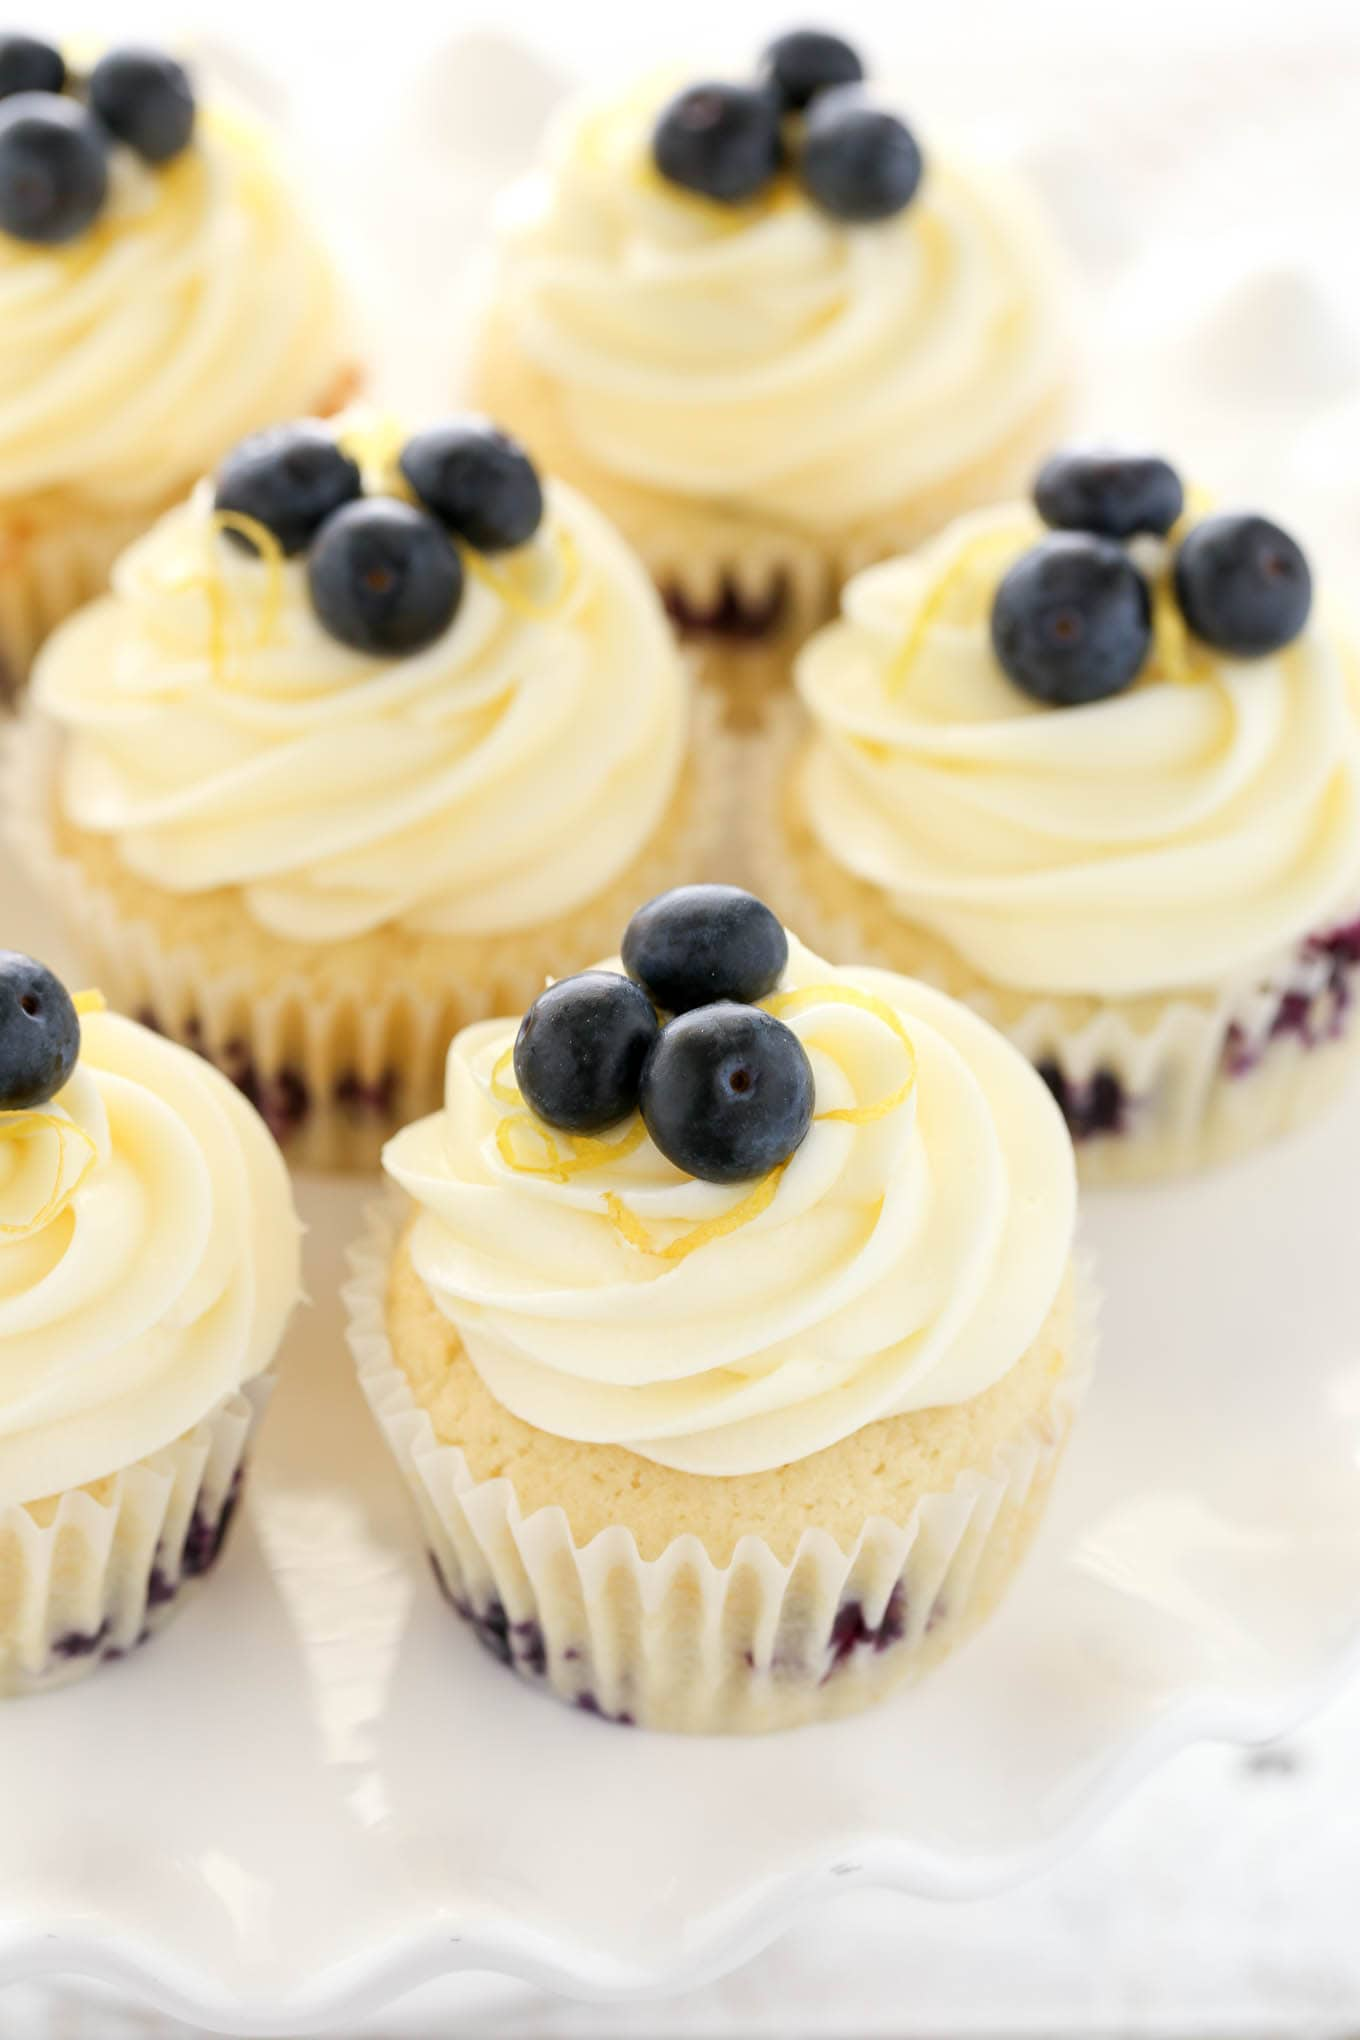 Soft, light, and moist lemon cupcakes loaded with fresh blueberries and topped with an easy lemon cream cheese frosting. These Lemon Blueberry Cupcakes are the perfect dessert for spring or summer!